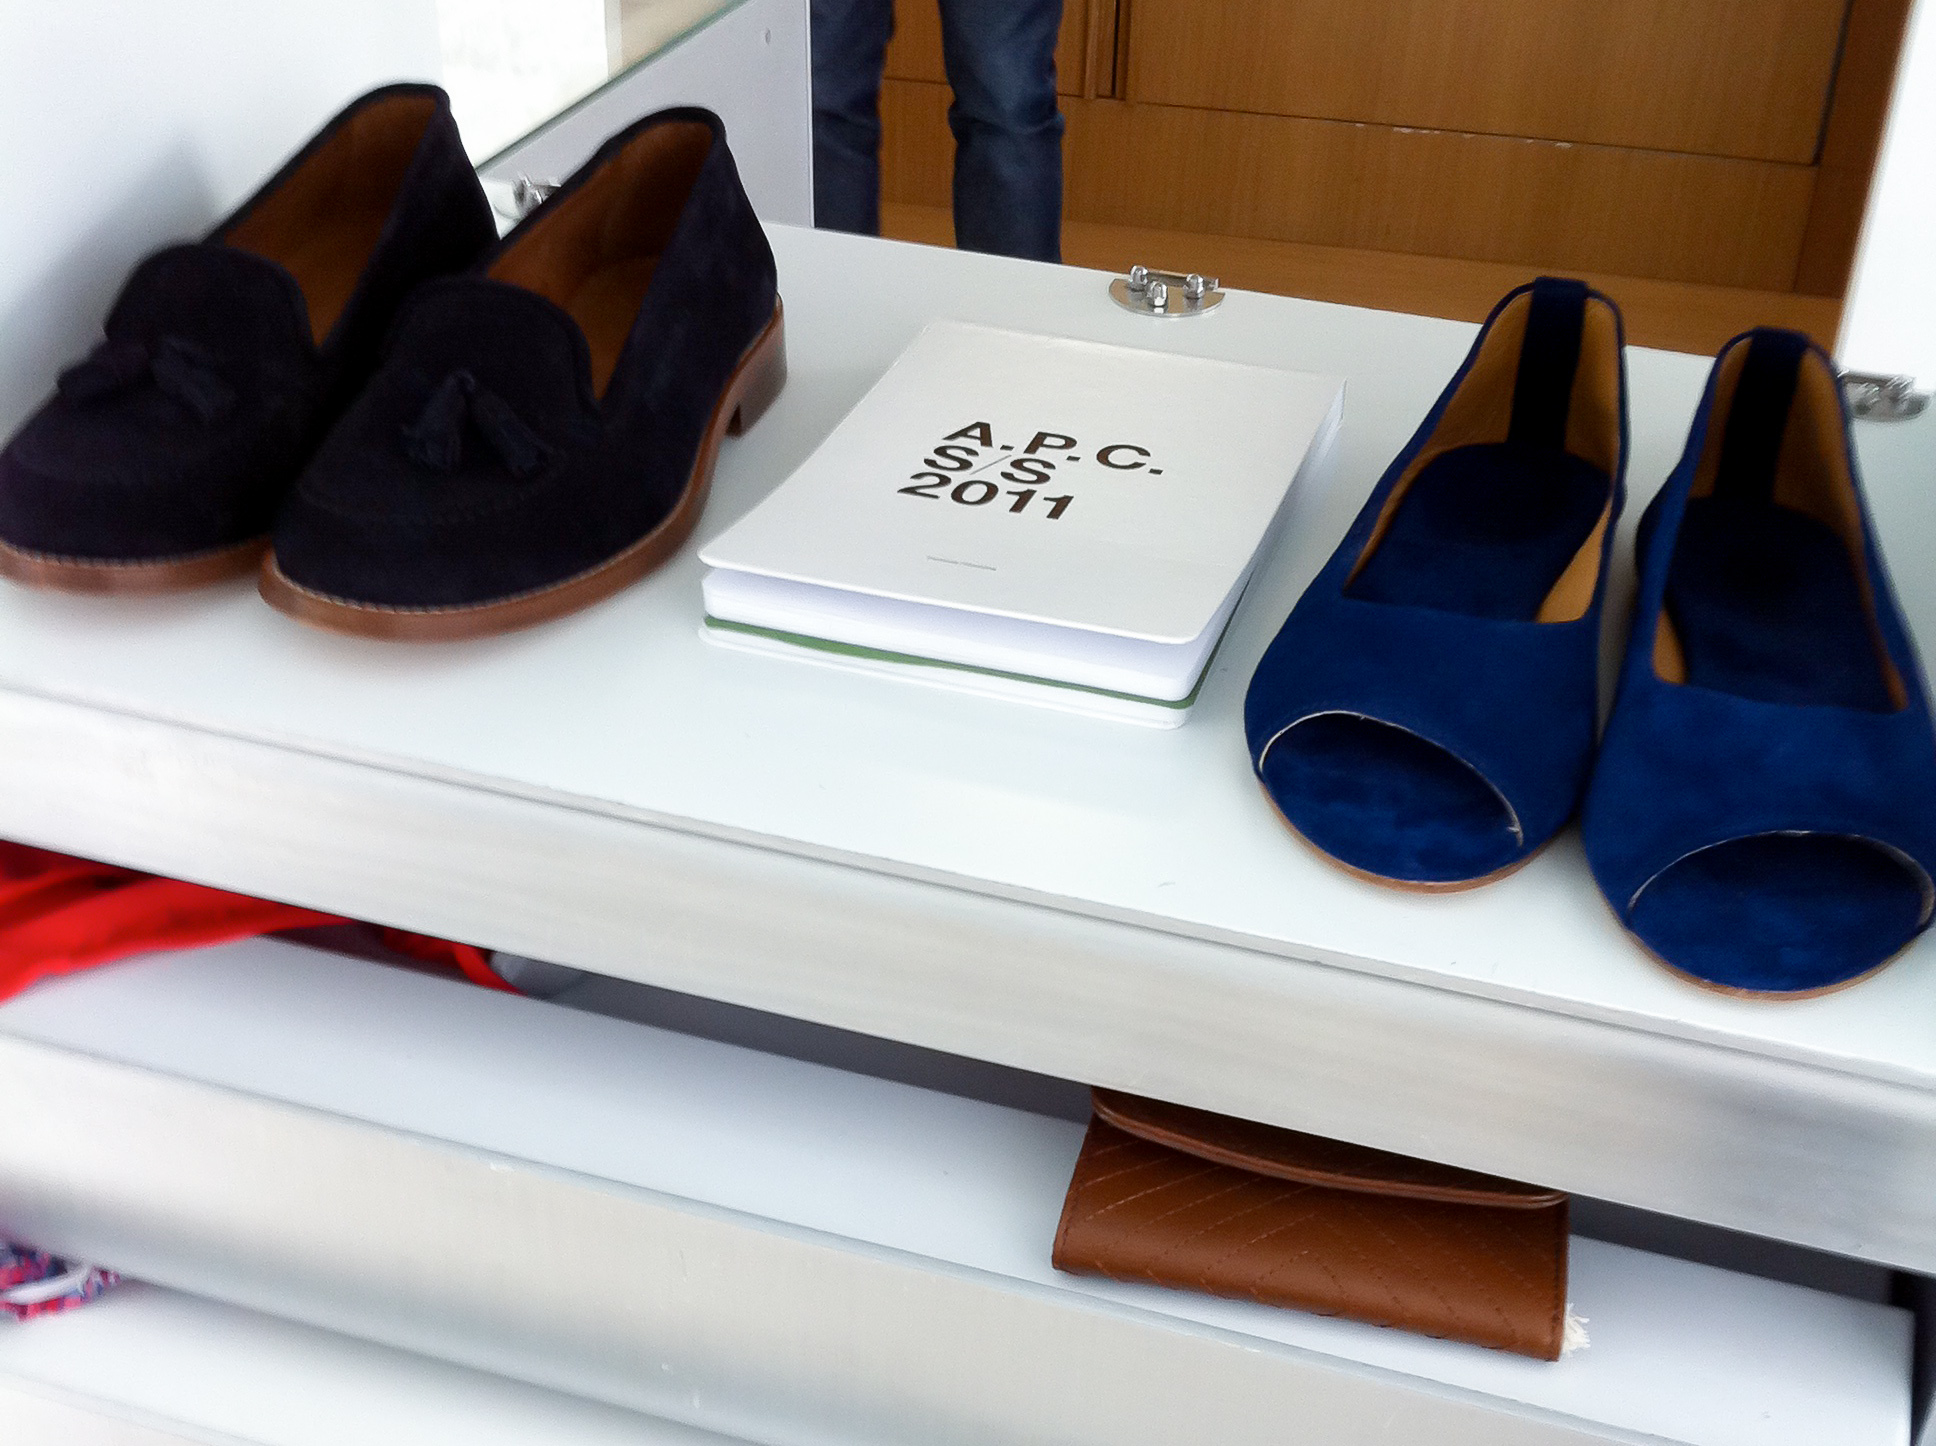 Accessory display at A.P.C. store in Paris. Photo by alphacityguides.